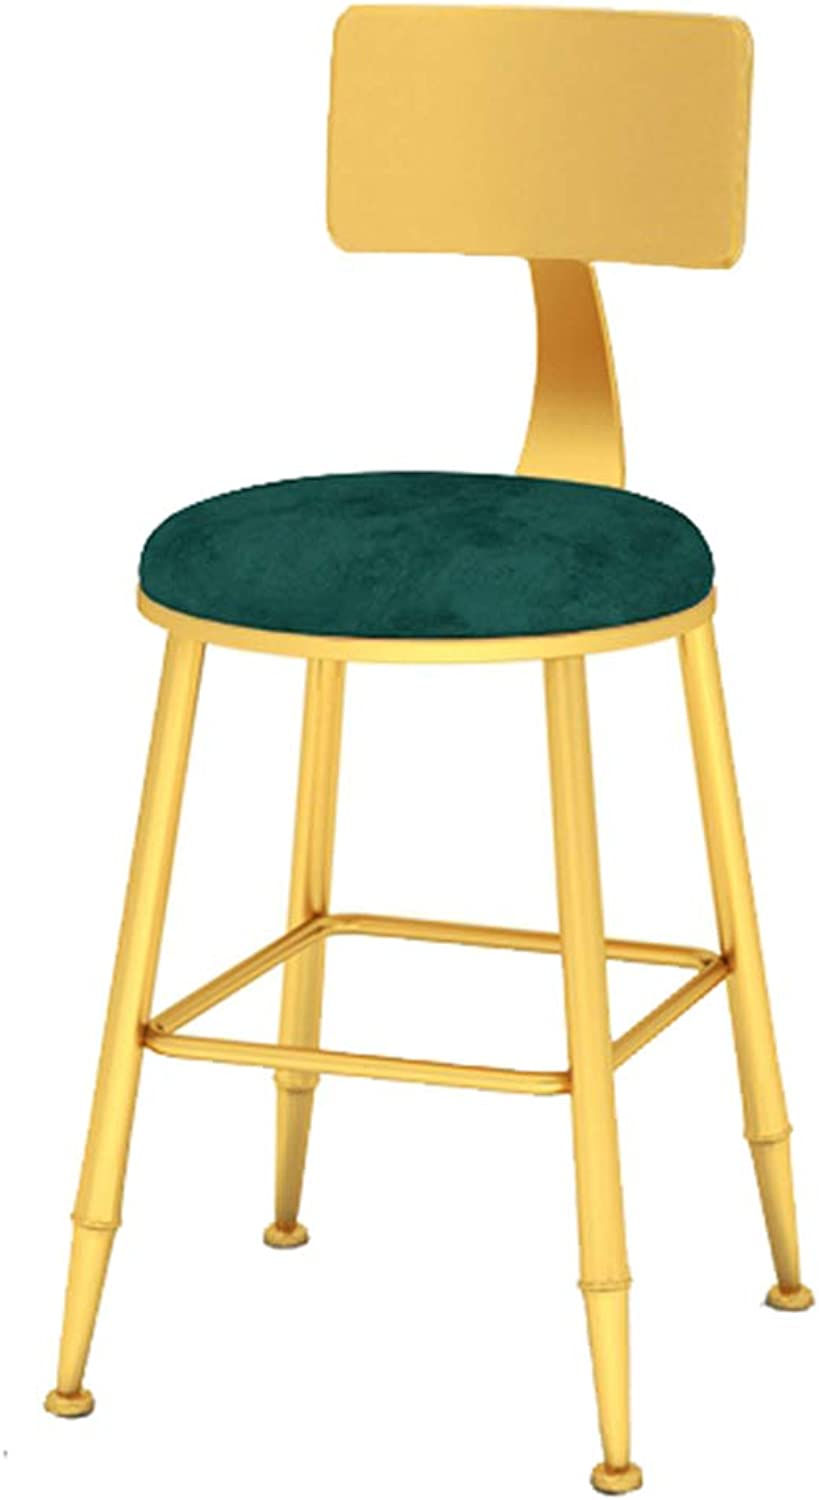 With Backrest Bar Stools Upholstered Barstools Round High Stools Modern Dining Chairs Minimalist Bar Chairs for Breakfast Pub Counter Kitchen Home Indoor Cafe